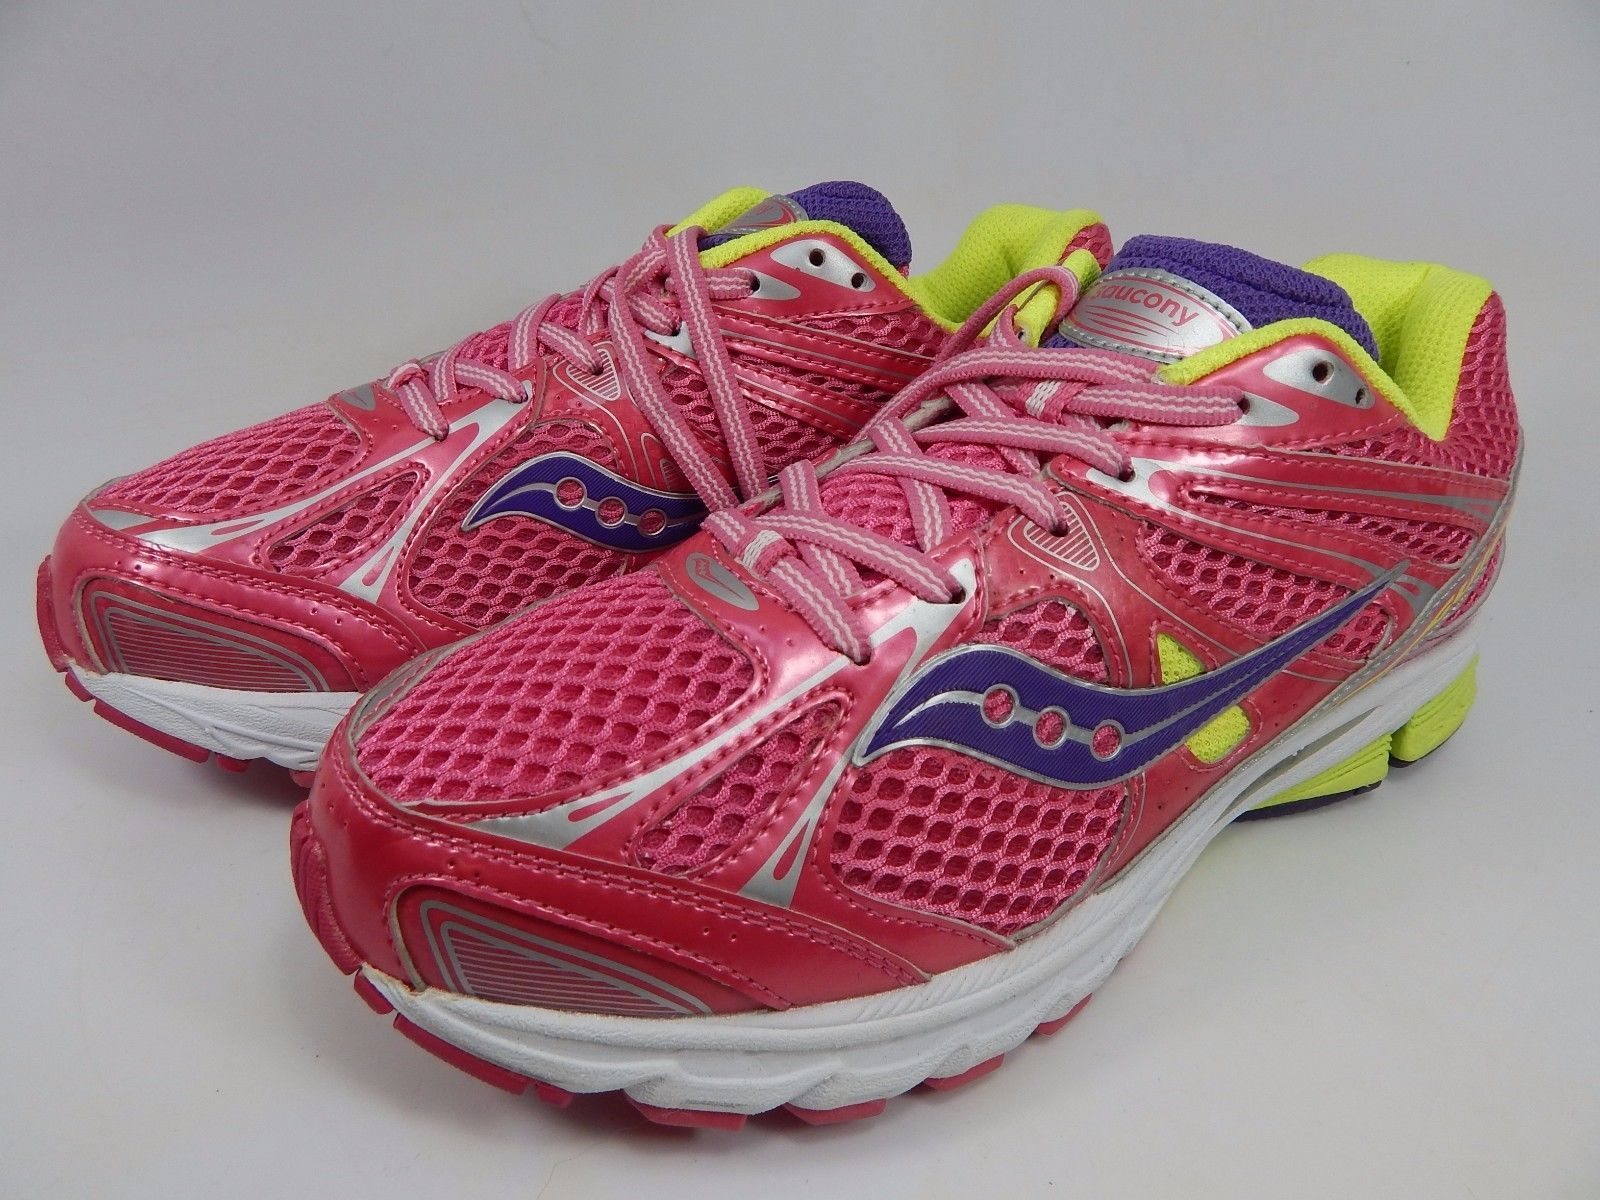 Saucony Guide 6 Girl's Youth Shoes Size US 6 B (6 Y) EU 38.5 Pink 80100-4